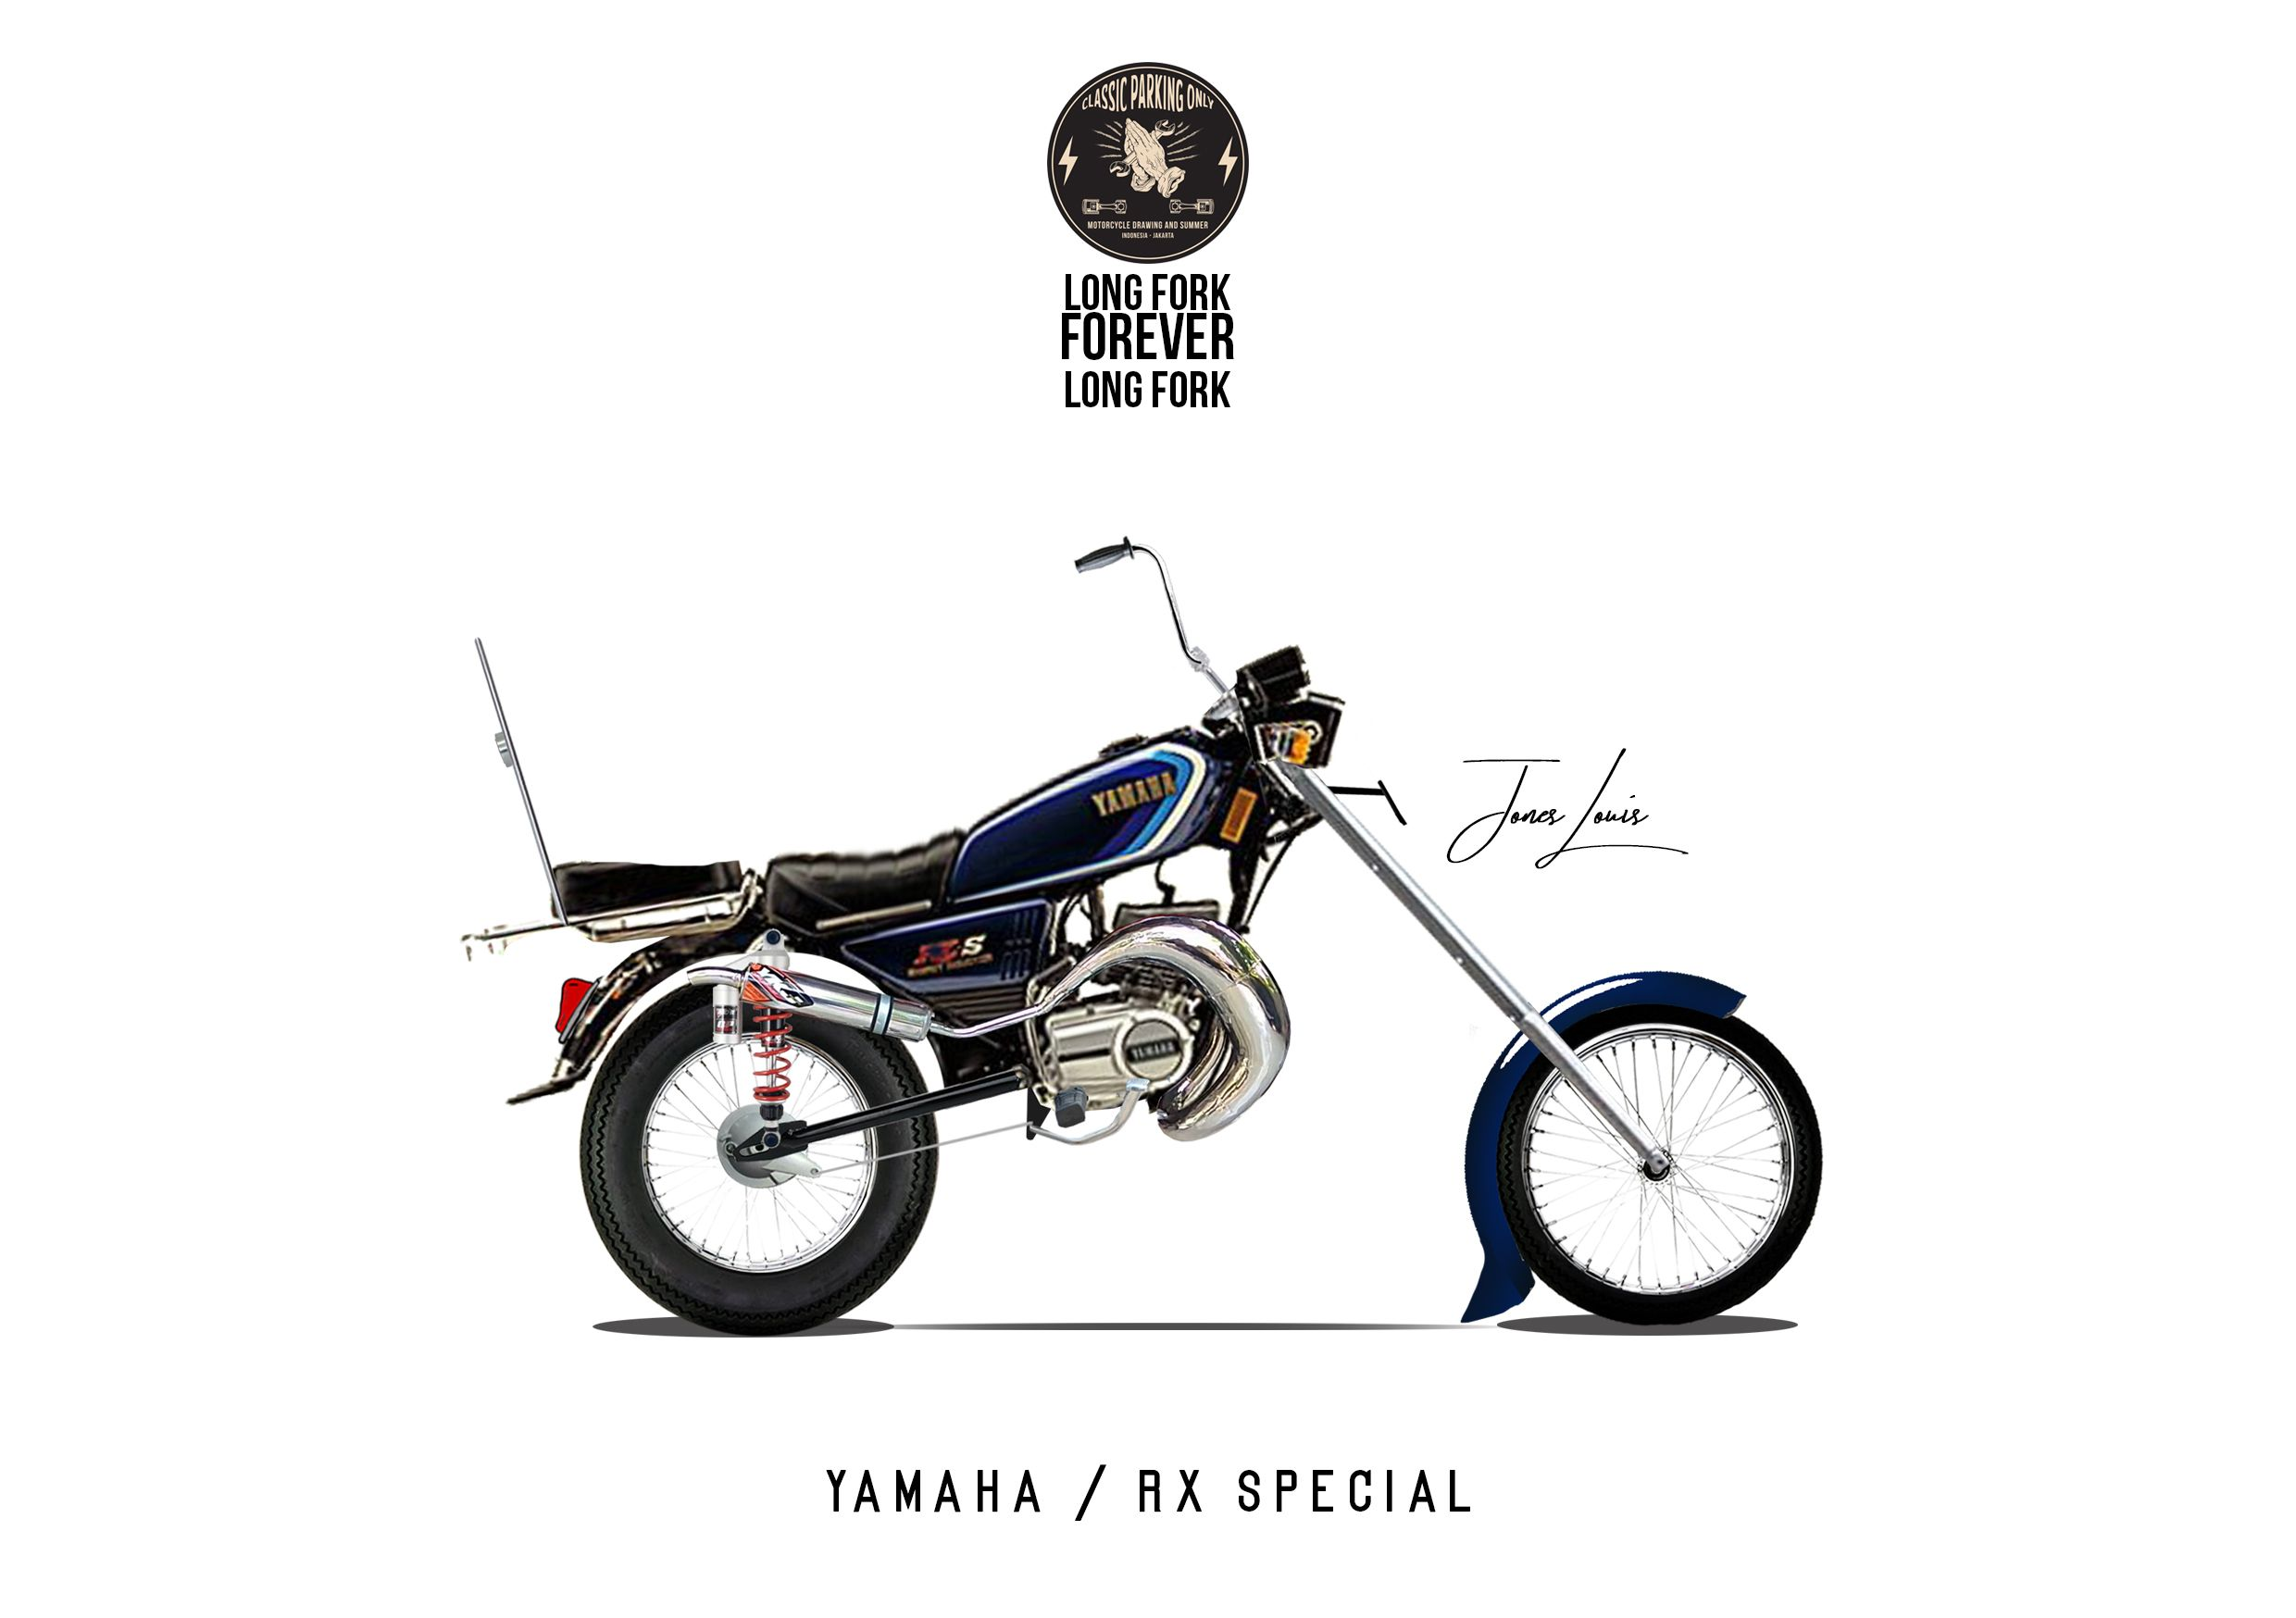 Yamaha Rx Special Mark Xvii Herex Two Stroke Mobil